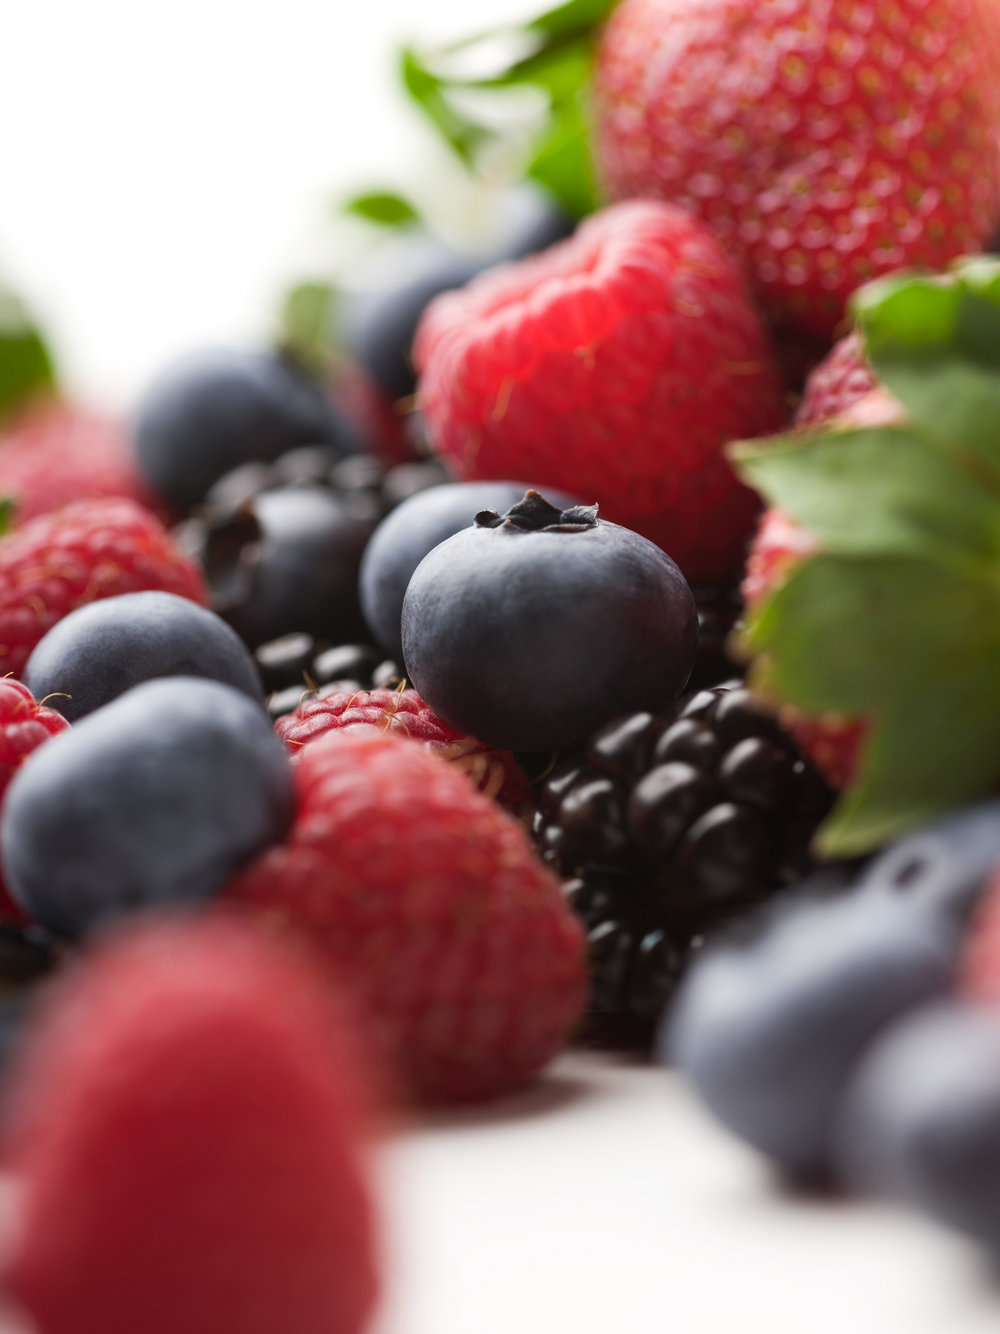 berries-stock-food-photo.jpg